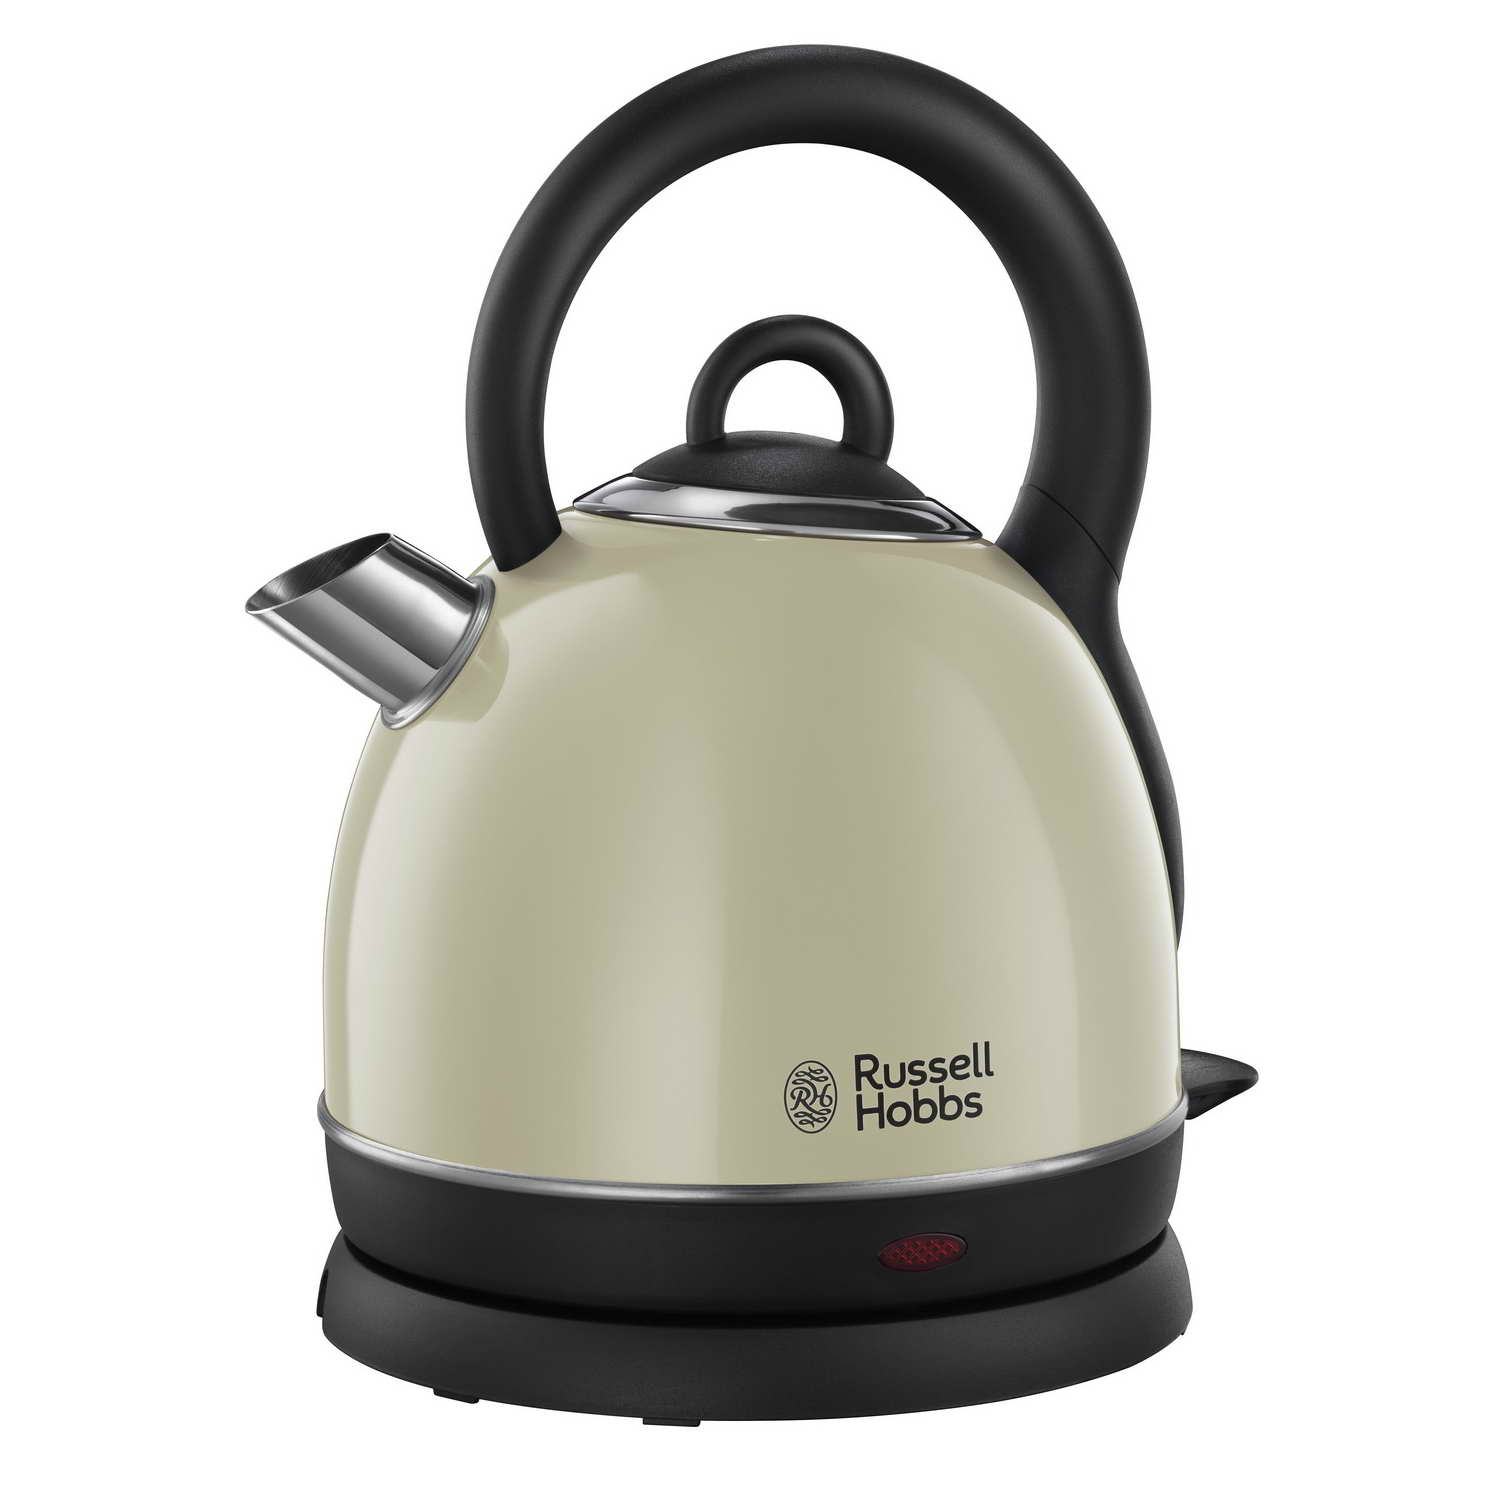 russell hobbs 19193 westminster cordless electric dome. Black Bedroom Furniture Sets. Home Design Ideas